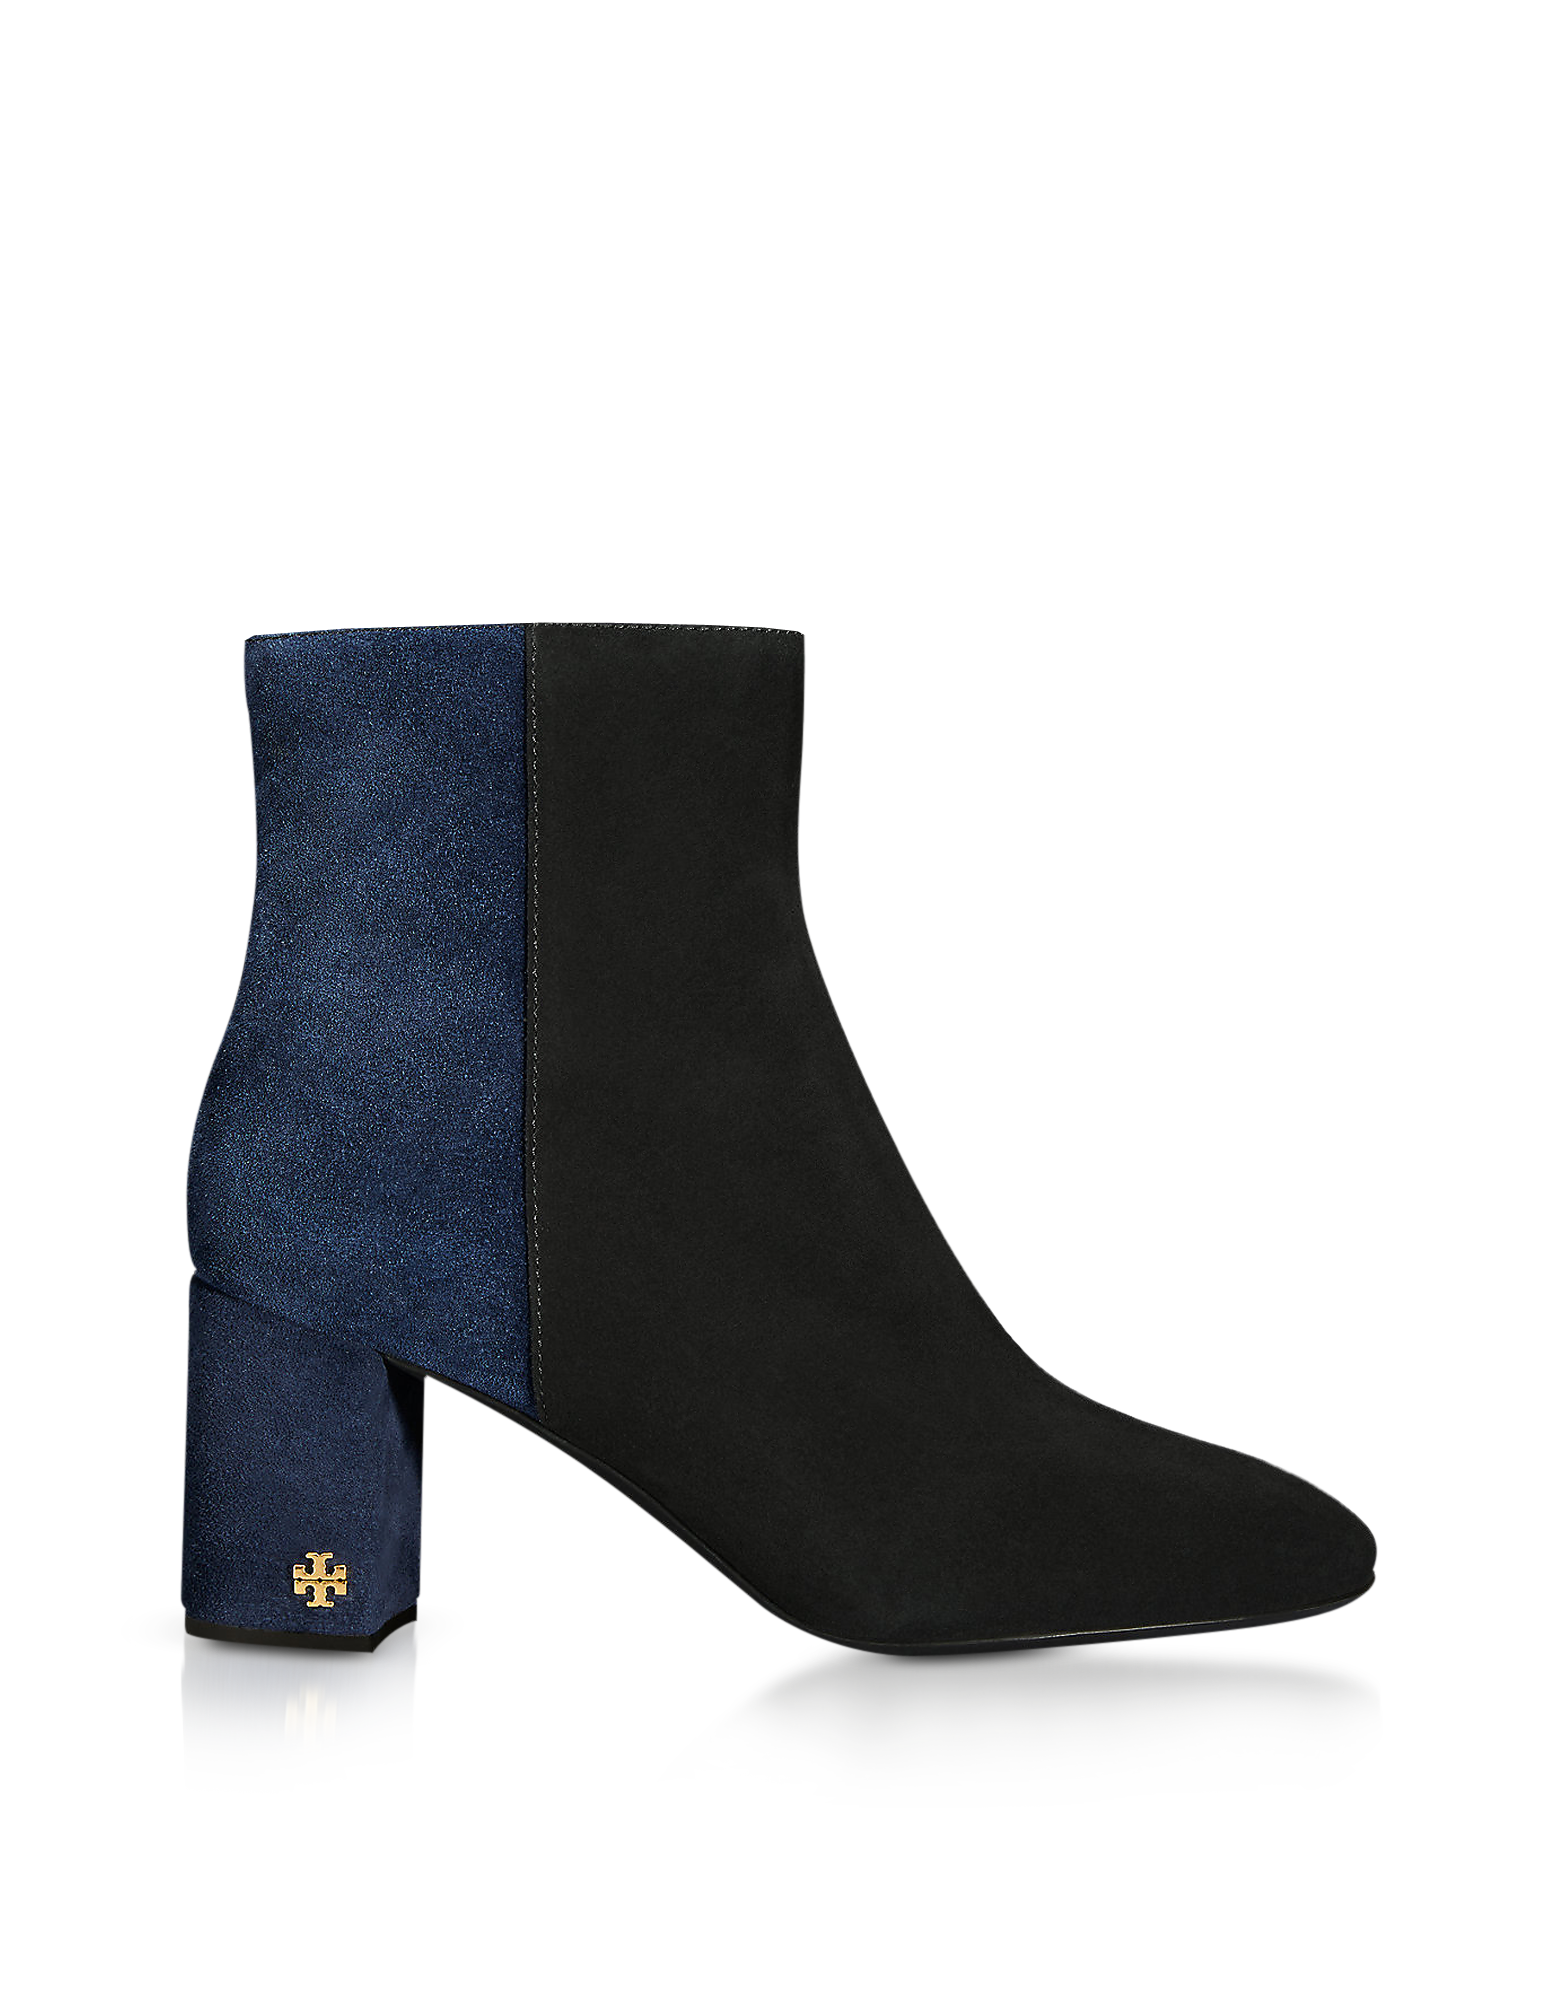 Tory Burch Designer Shoes, Perfect and Navy Brooke 70MM Booties